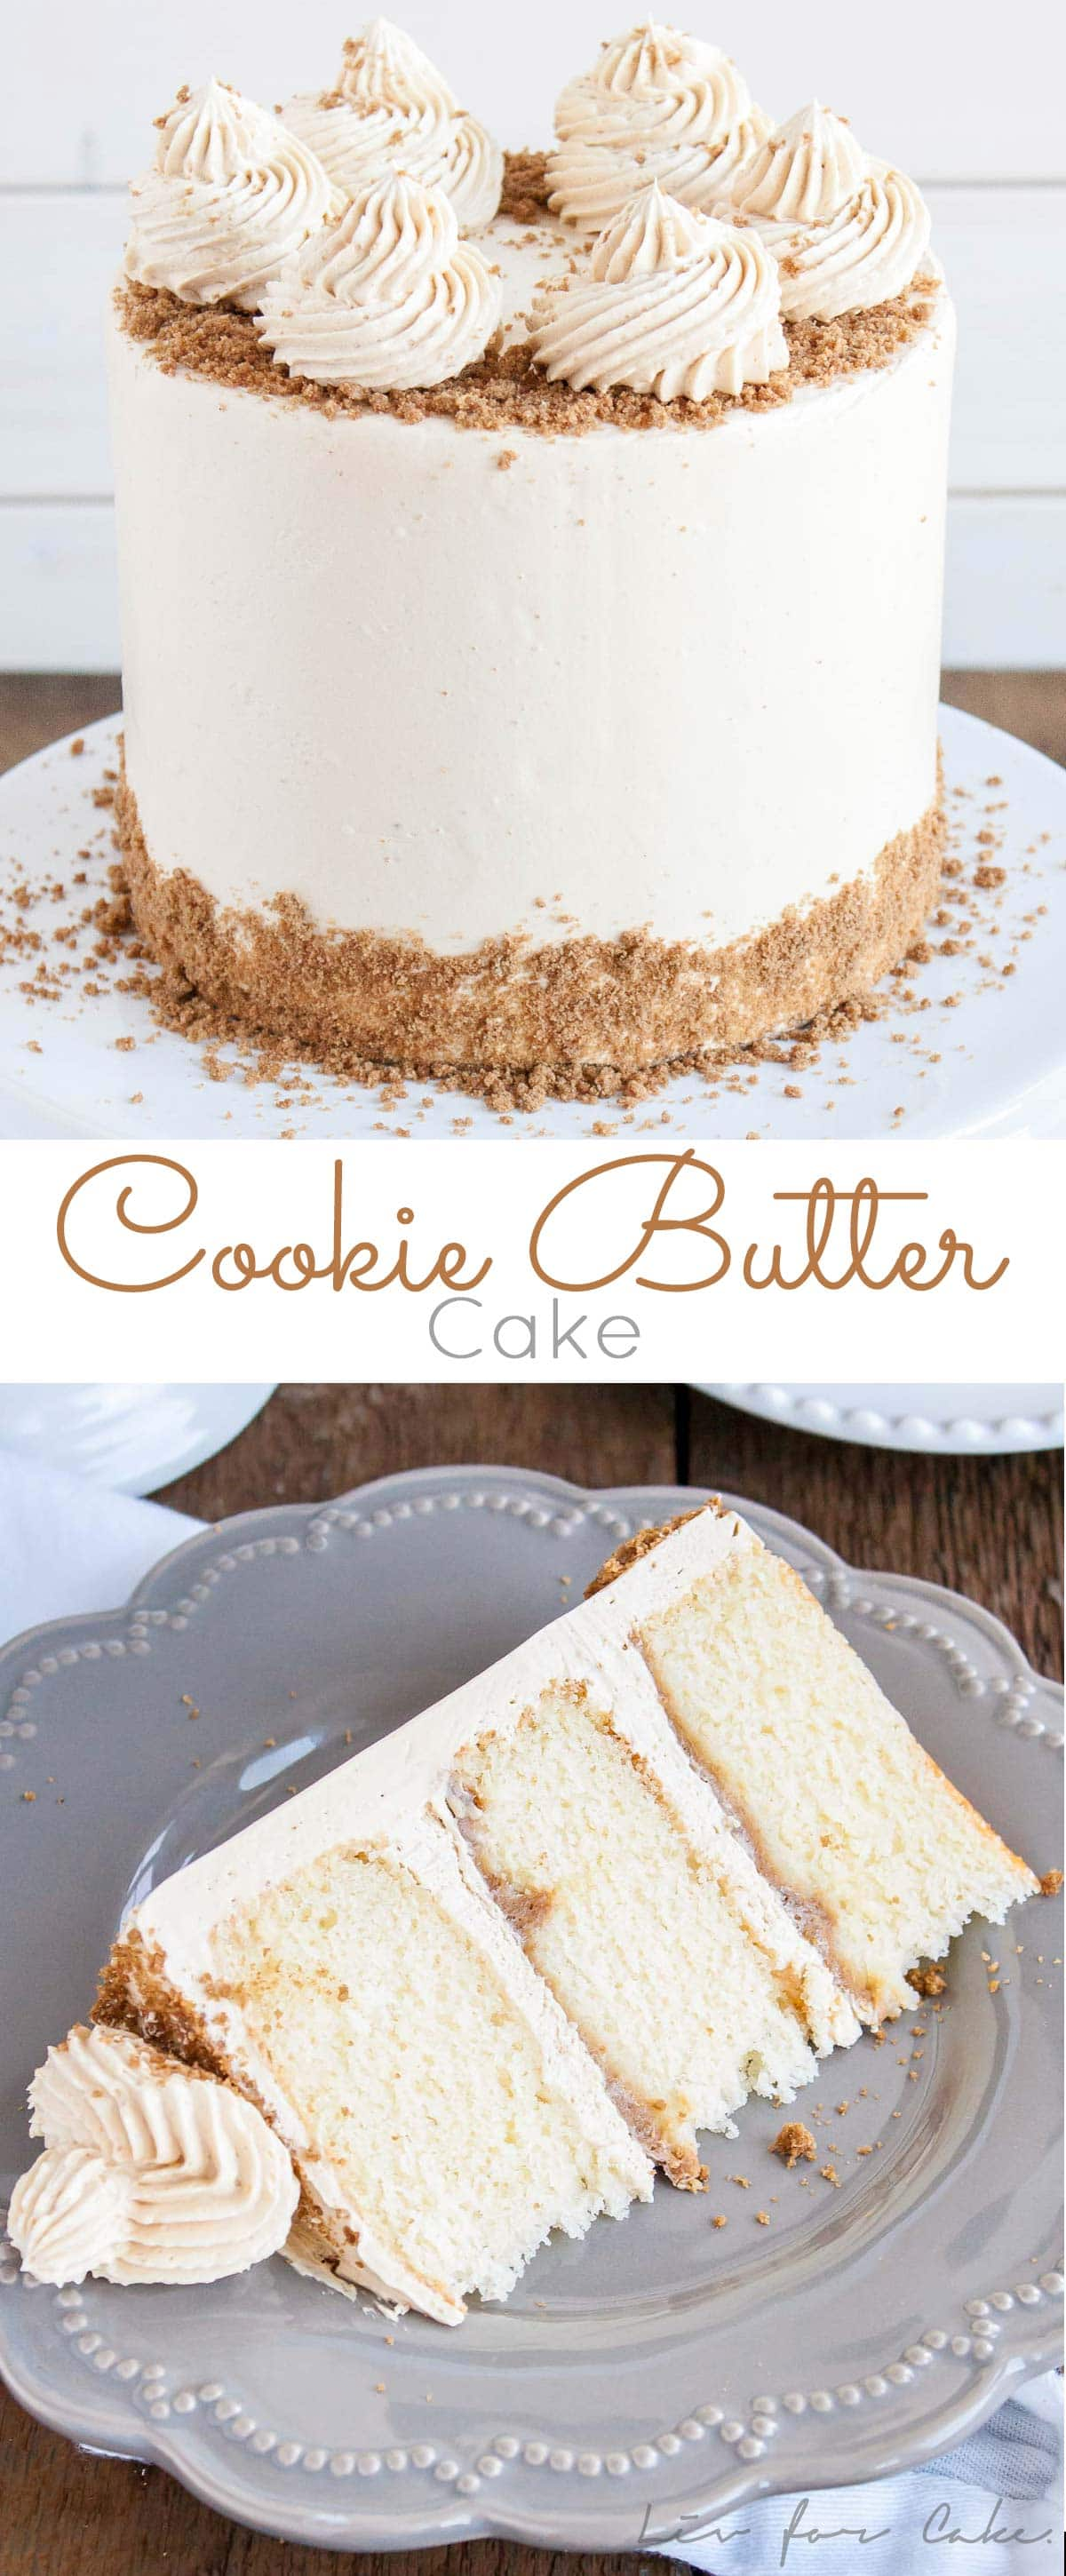 This Cookie Butter Cake pairs fluffy vanilla cake with a sweet cookie butter frosting and crushed speculoos cookies for some added crunch. | livforcake.com